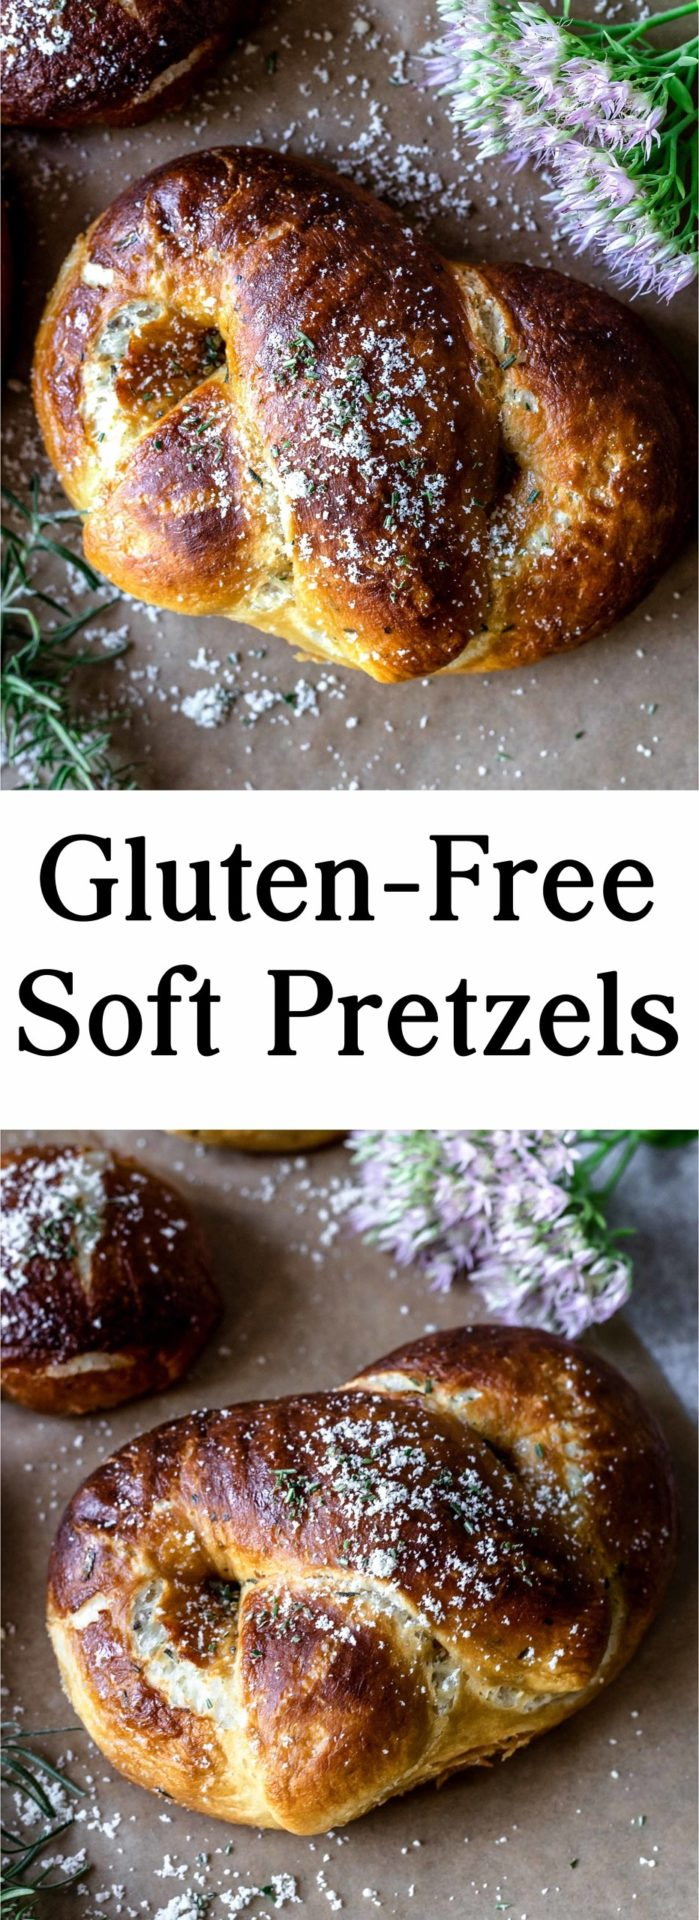 These Gluten-Free Soft Pretzels are chewy, pillowy soft, flavorful, super delicious plus low FODMAP, and easy to digest.